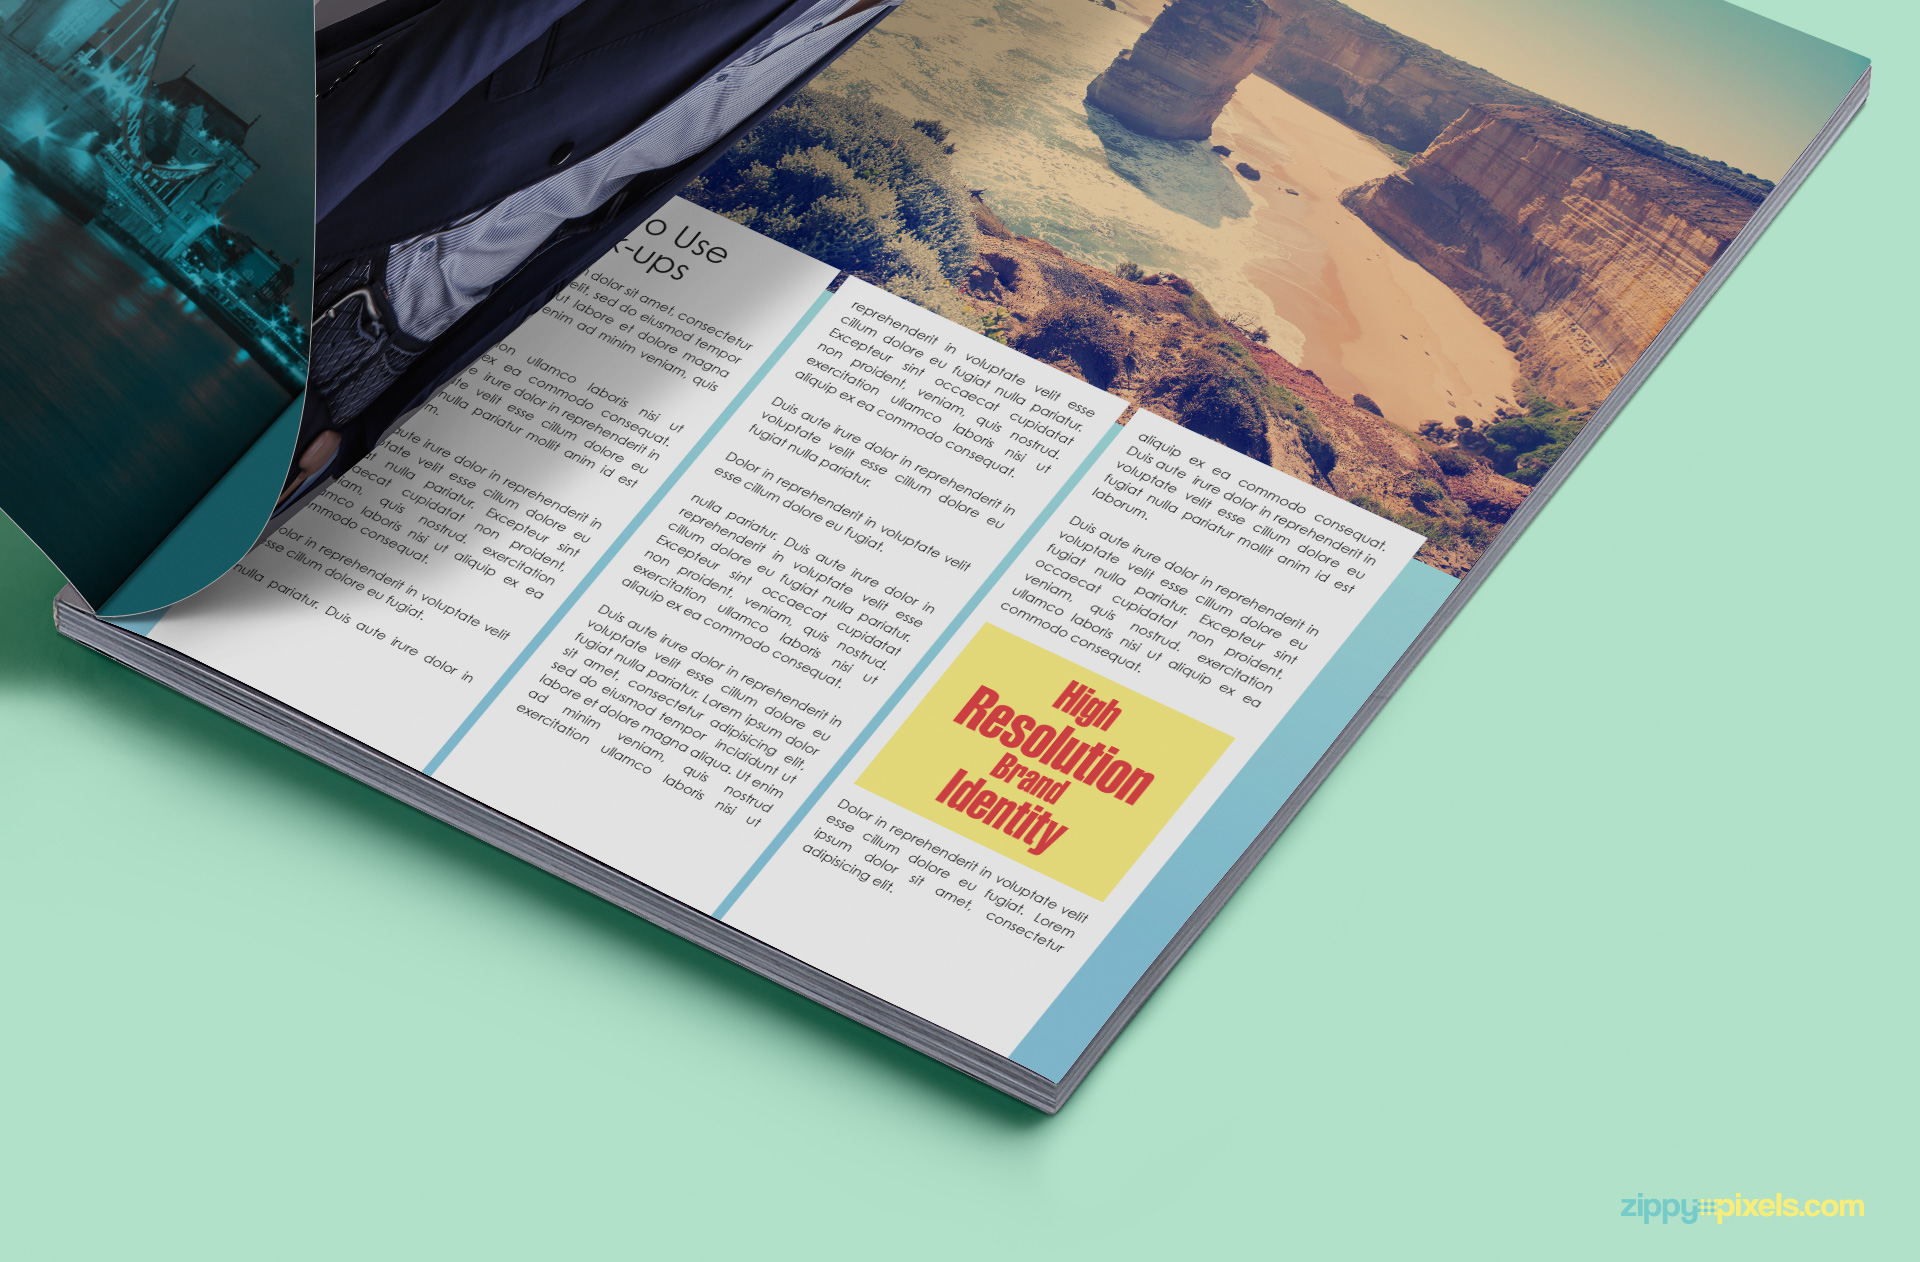 Free PSD mockup showing 3 inner magazine pages